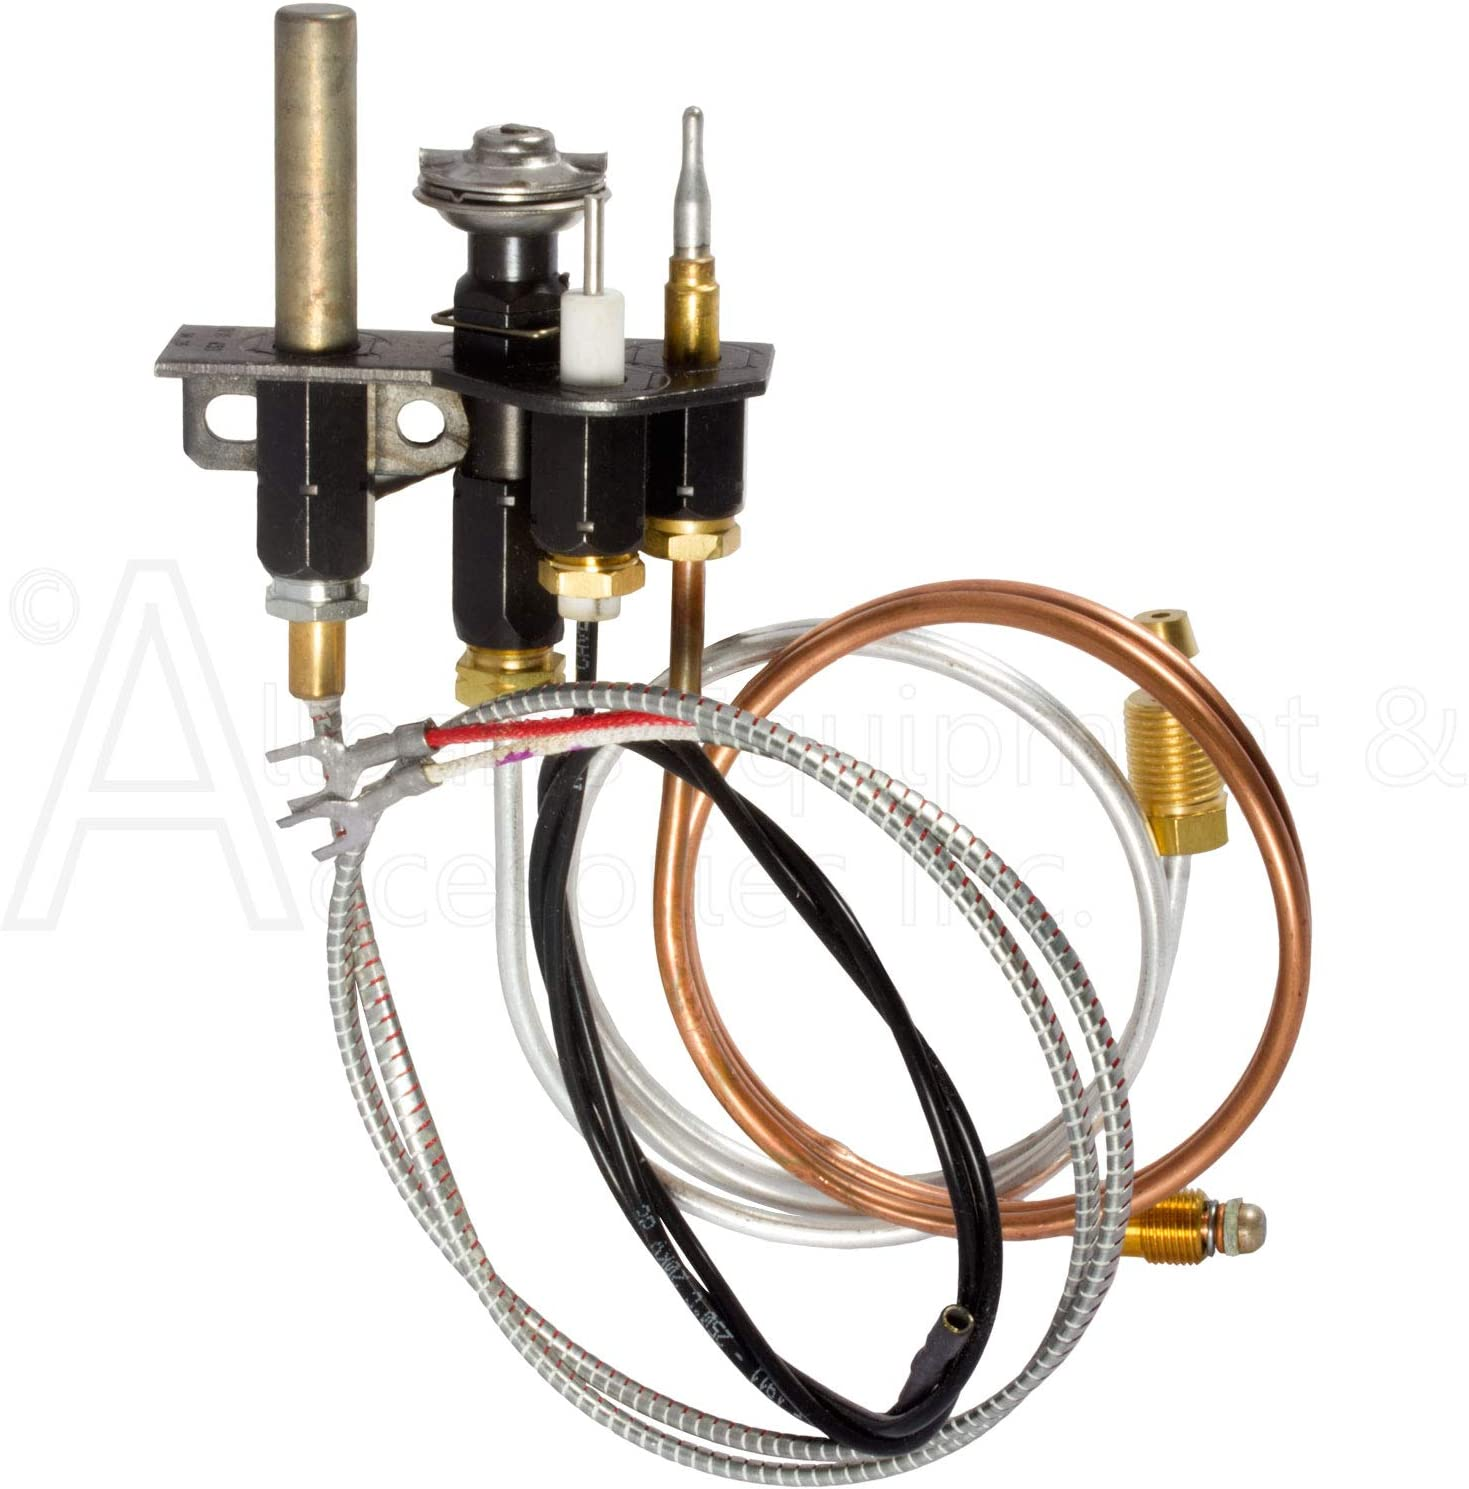 Sit 0199701 Pilot Assembly LPG Propane Gas with 24 Inch Leads